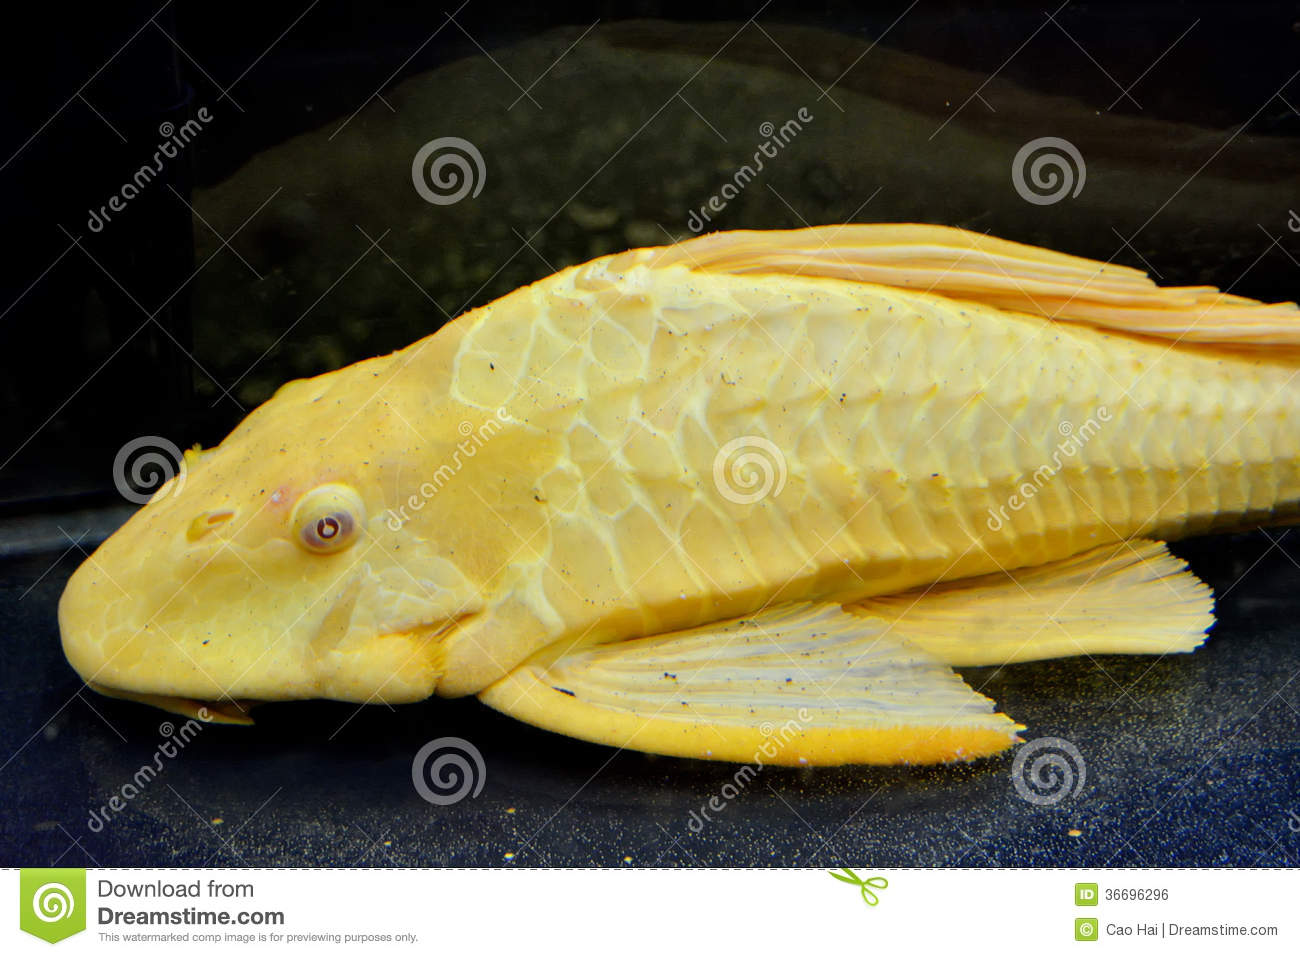 A yellow aquarium fish royalty free stock image image for Fish and pets unlimited